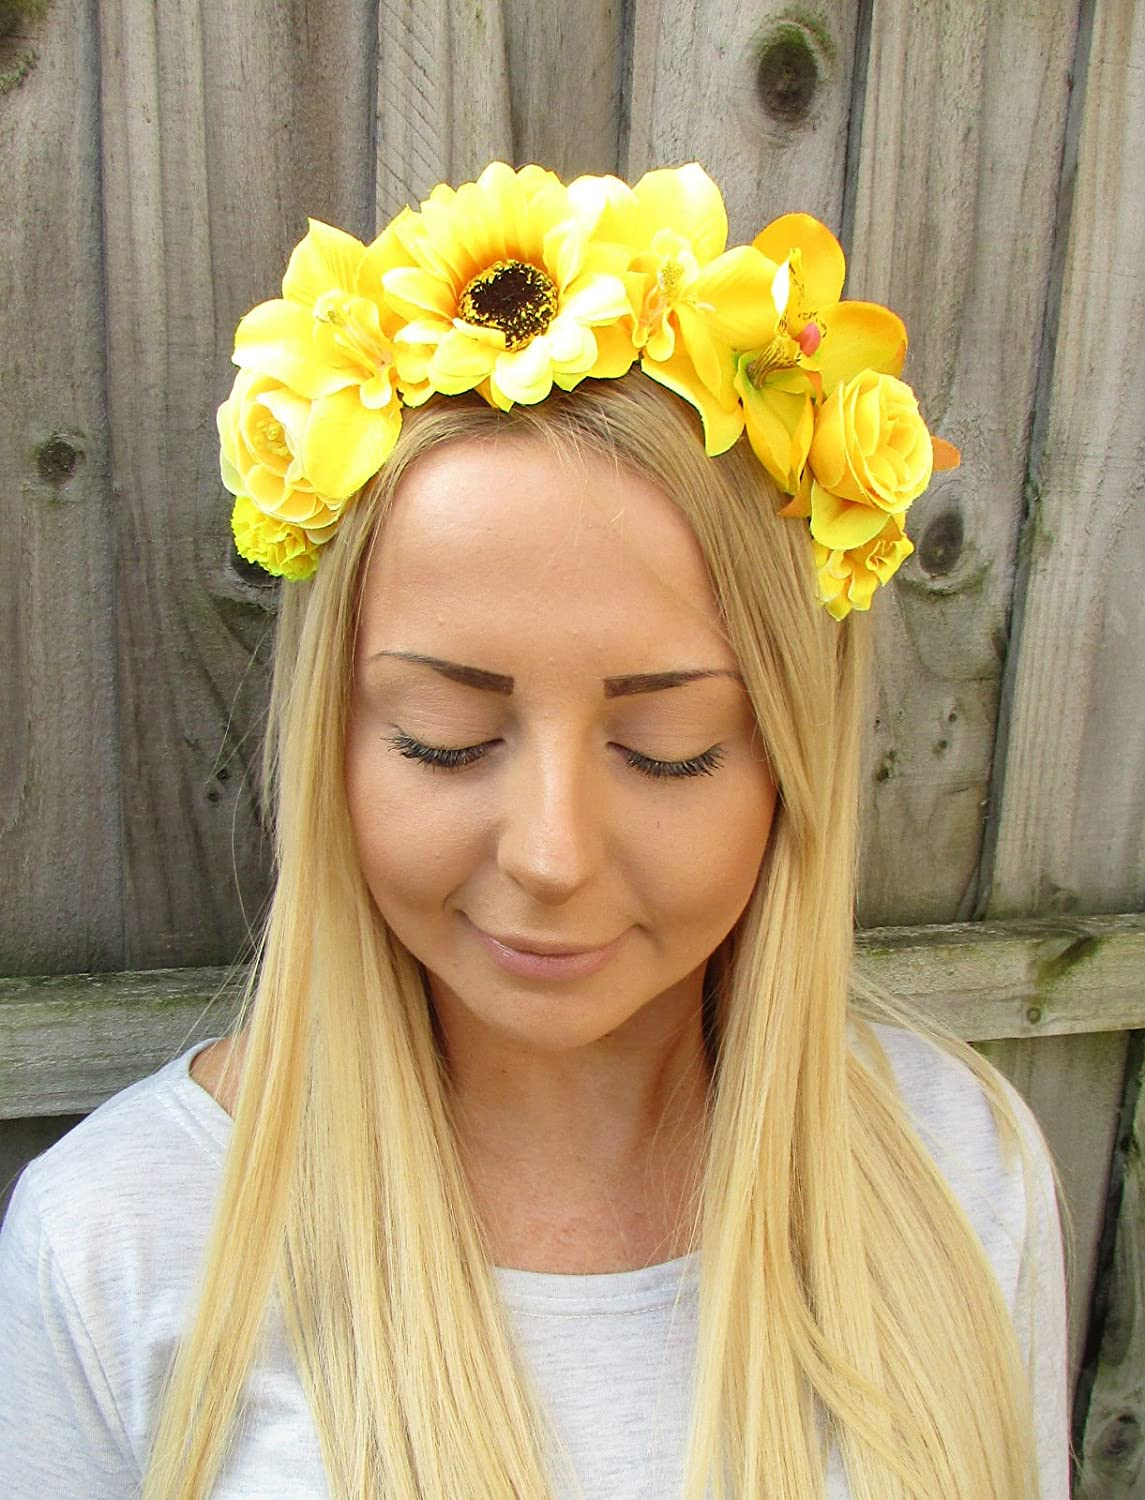 Yellow Rose Orchid Sunflower Flower Garland Headband Hair Crown Floral Boho  1920  EXCLUSIVELY SOLD BY STARCROSSED BEAUTY   Amazon.co.uk  Beauty 00b601aaeba